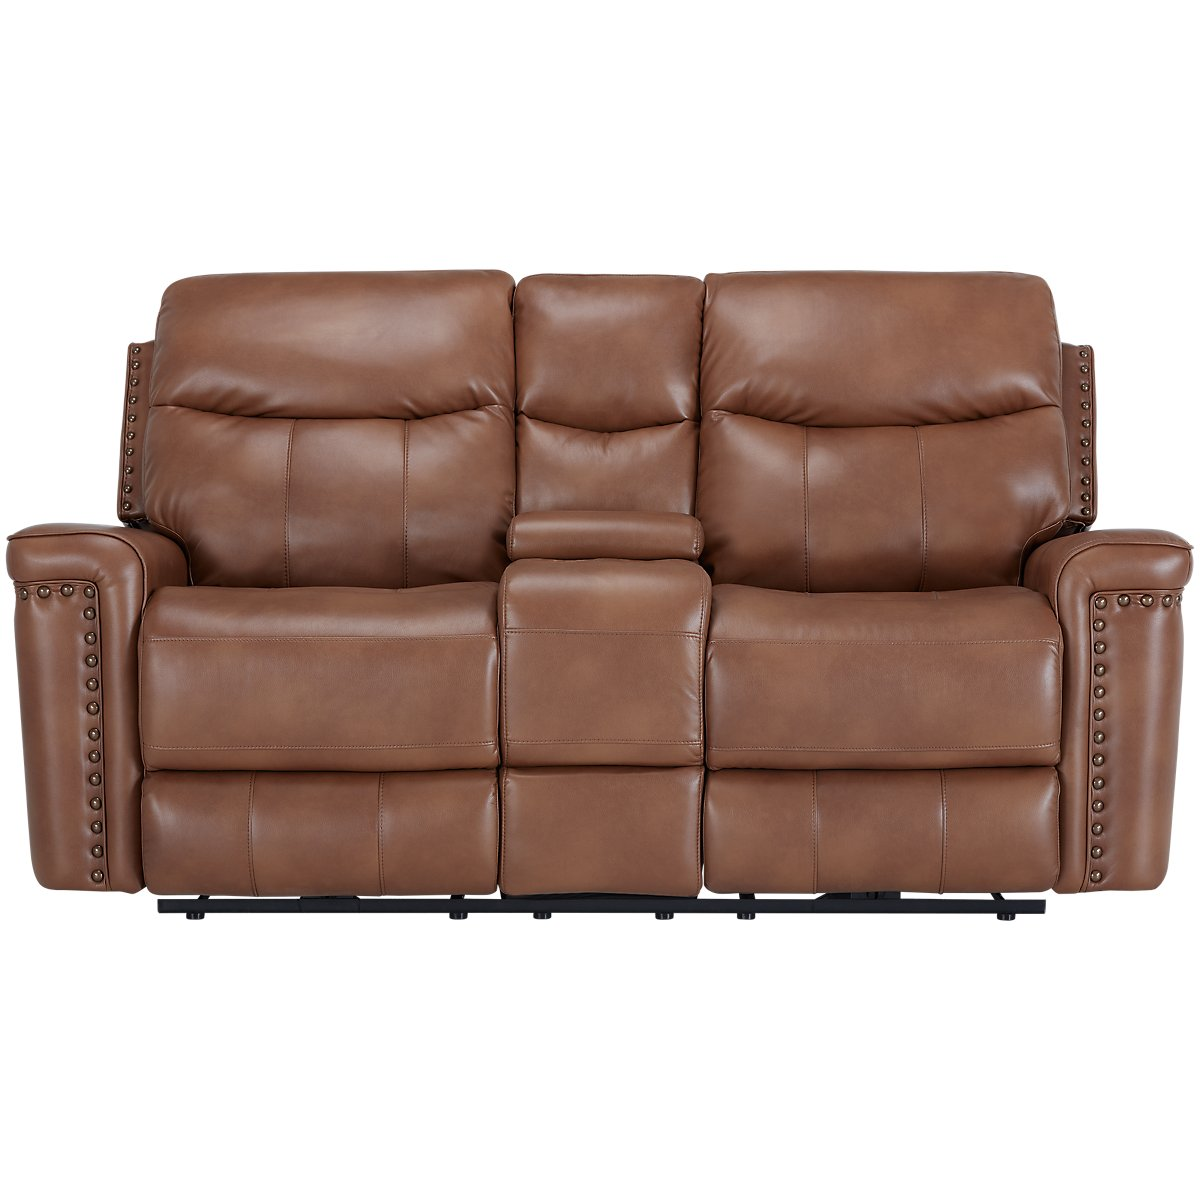 Wallace Medium Brown Microfiber Power Reclining Console